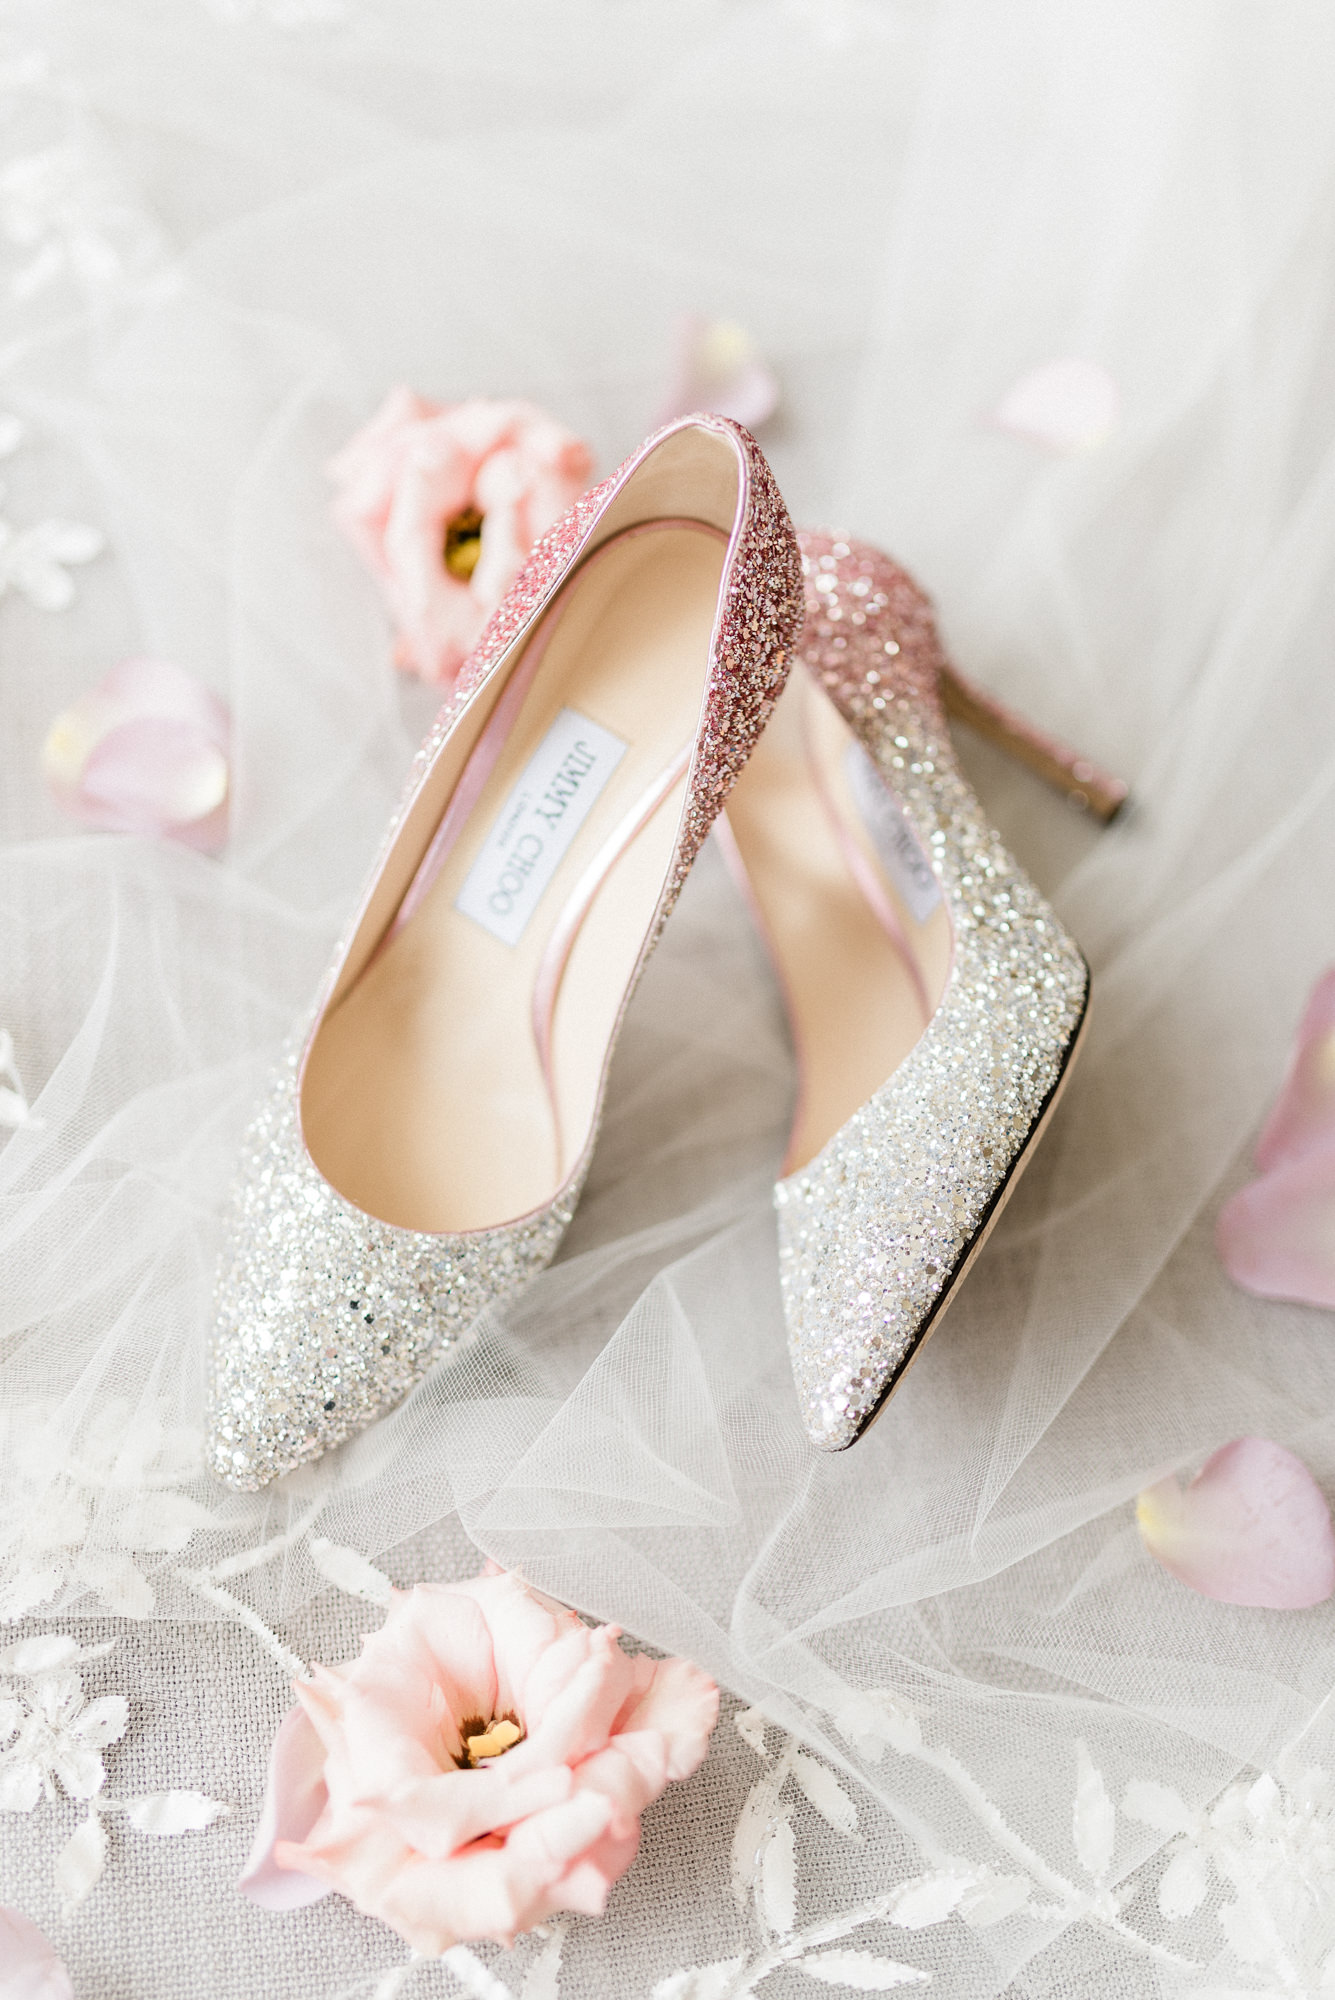 Jimmy Choo sparkle two-toned wedding pumps - Gianluca Adovasio Photography